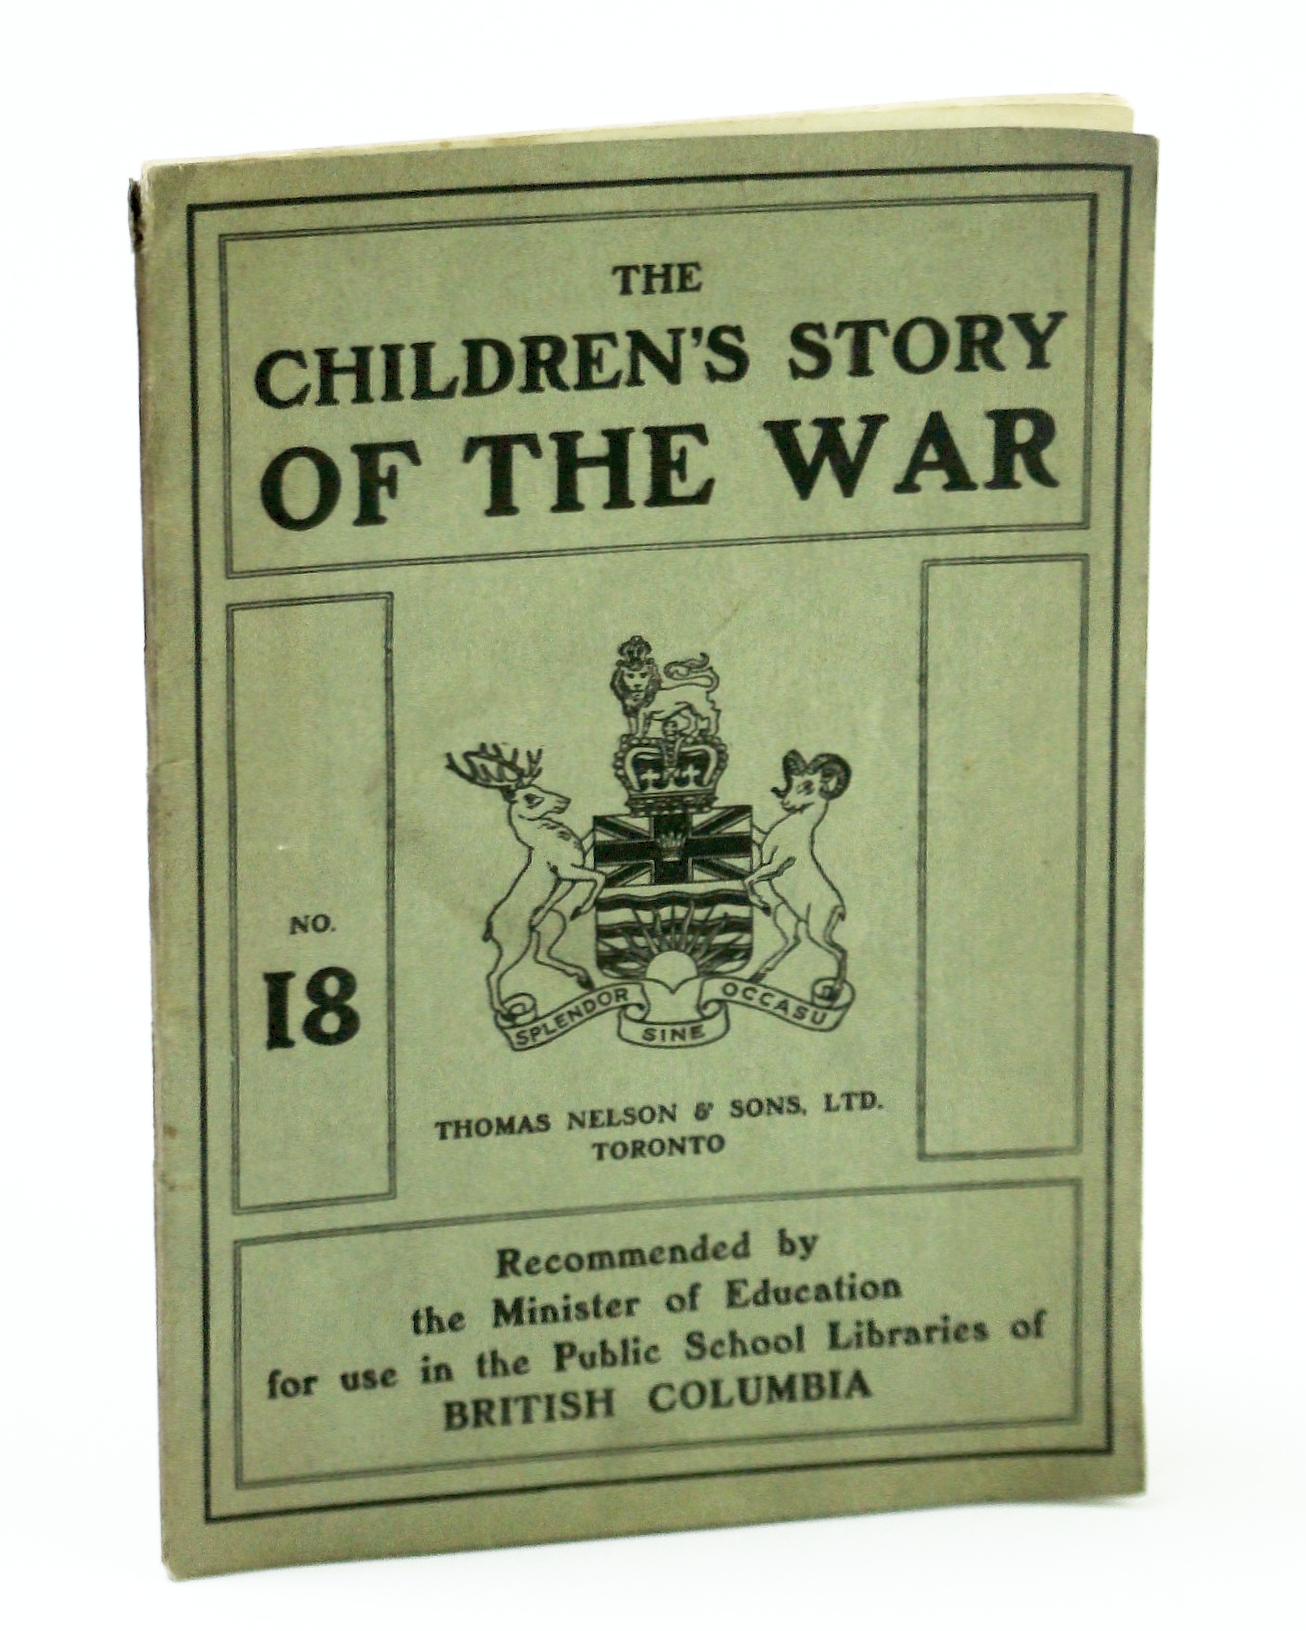 Image for The Children's Story of the War (WWI), No. 18 (Eighteen)